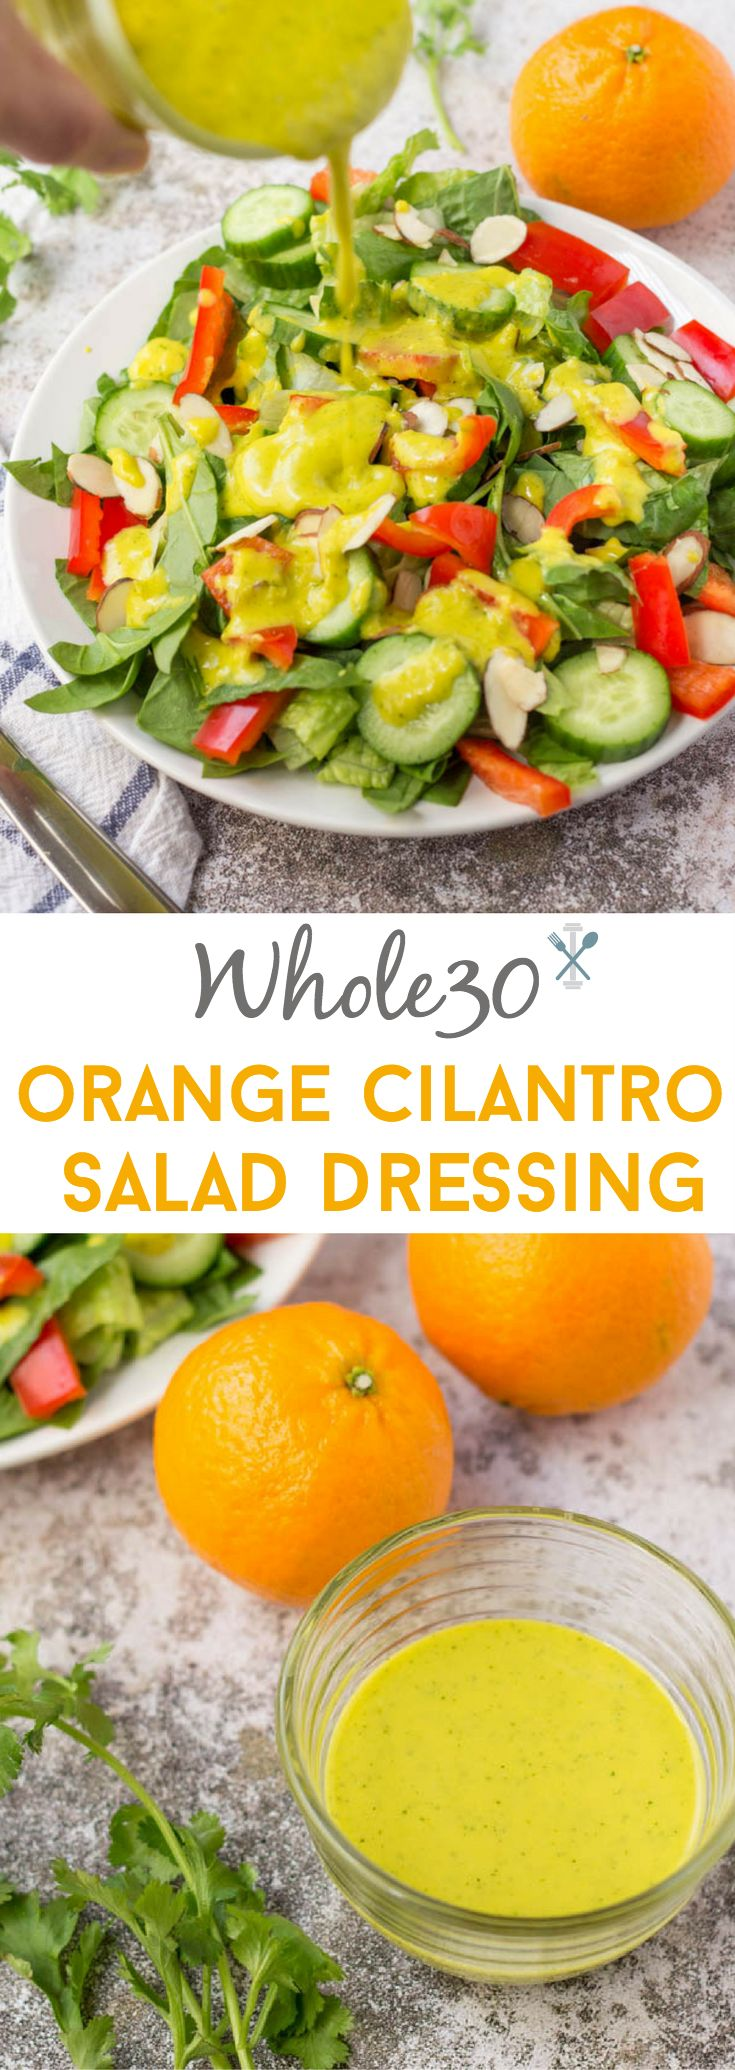 Creamy, Whole30 orange cilantro salad dressing - less than 5 minutes to make and burning with flavor. Vegan • Paleo